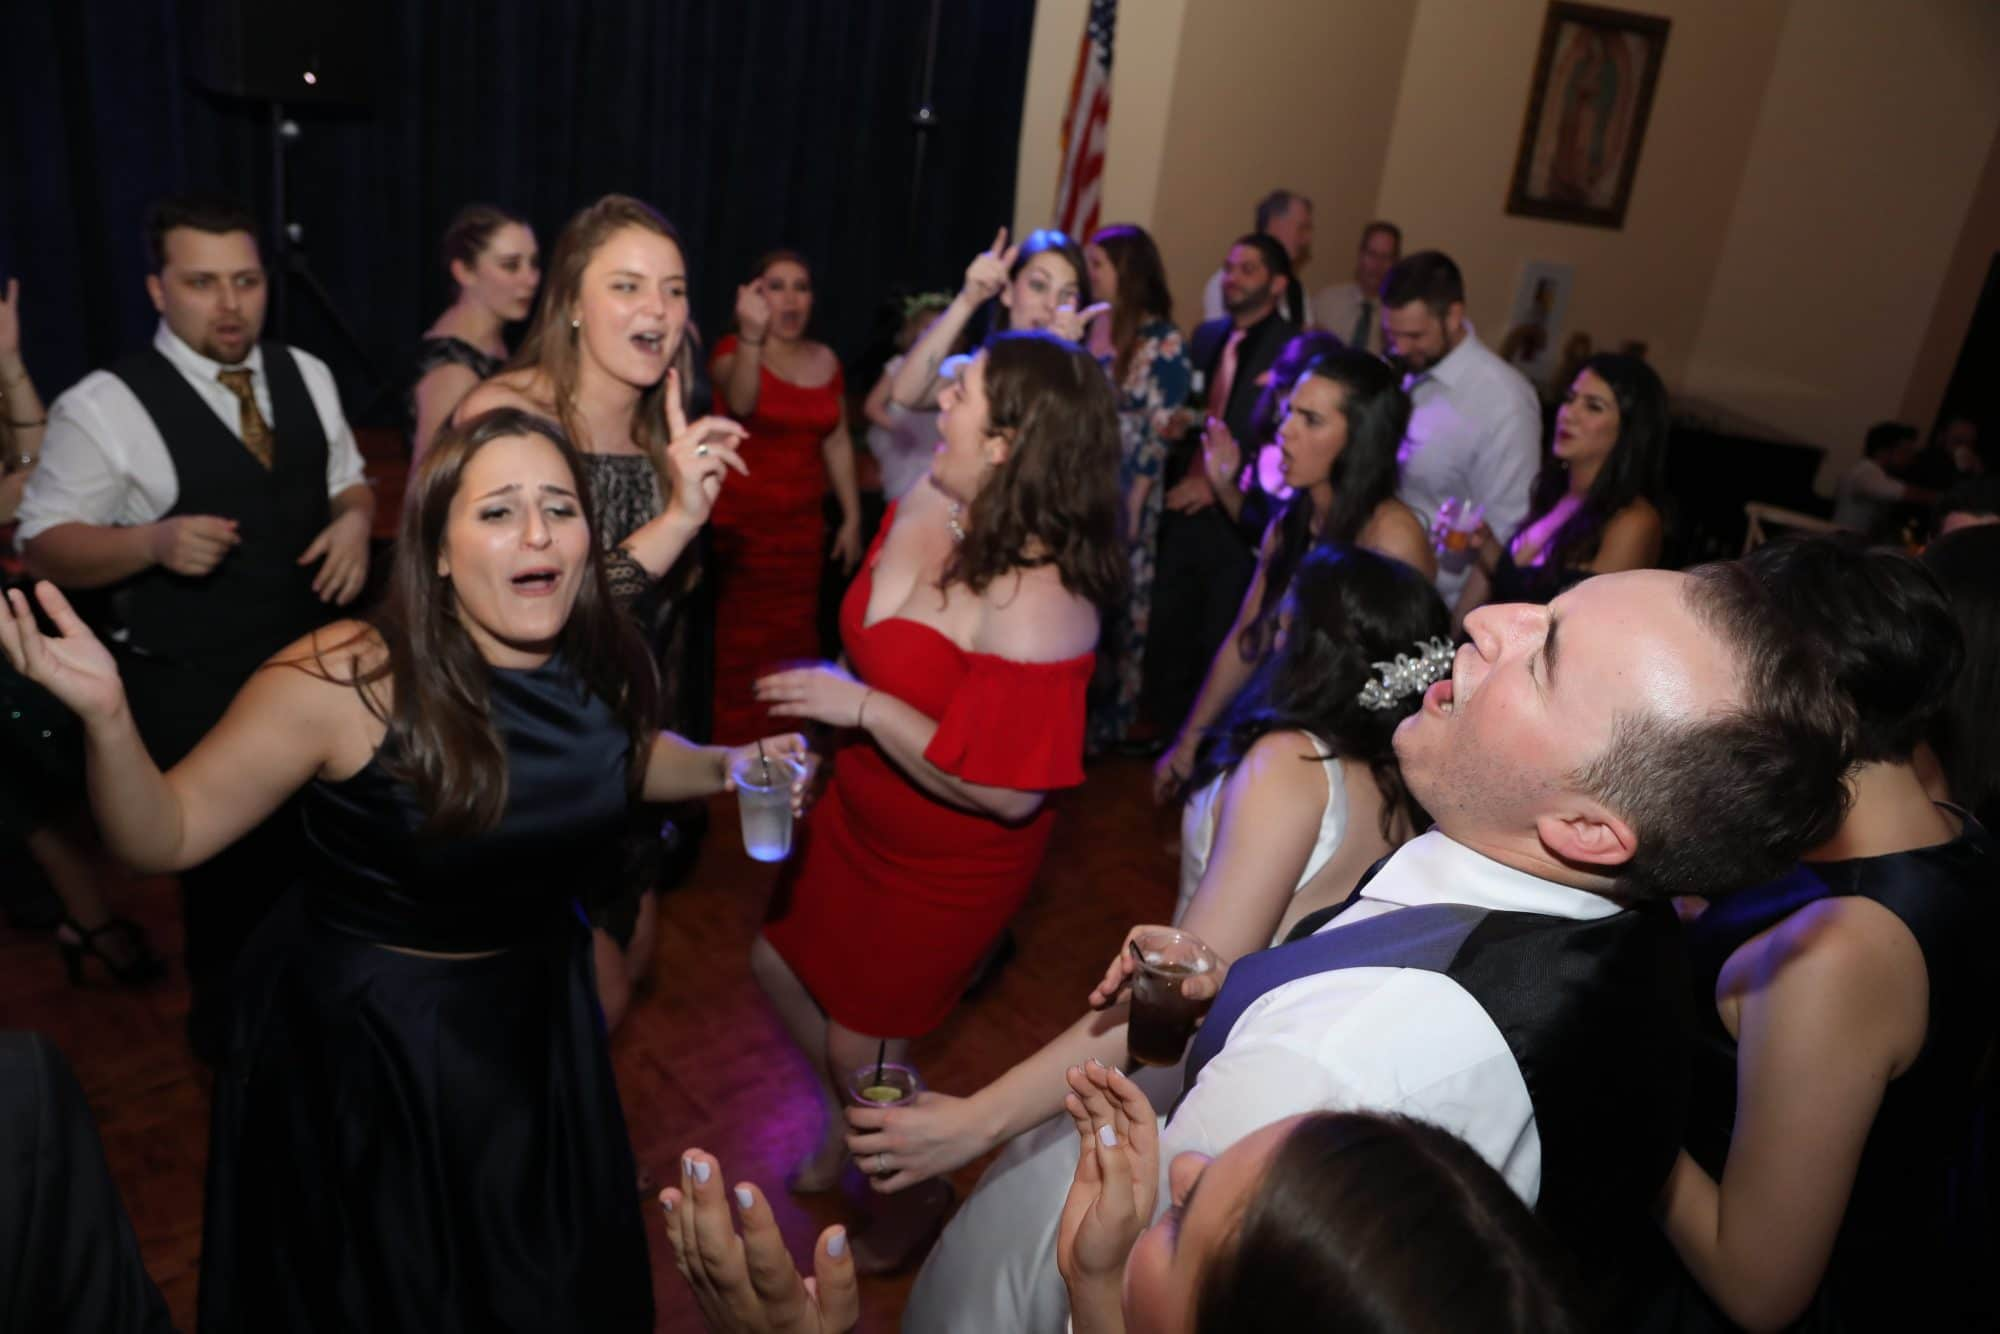 Blue Blazers Entertainment - wedding guests dancing and singing